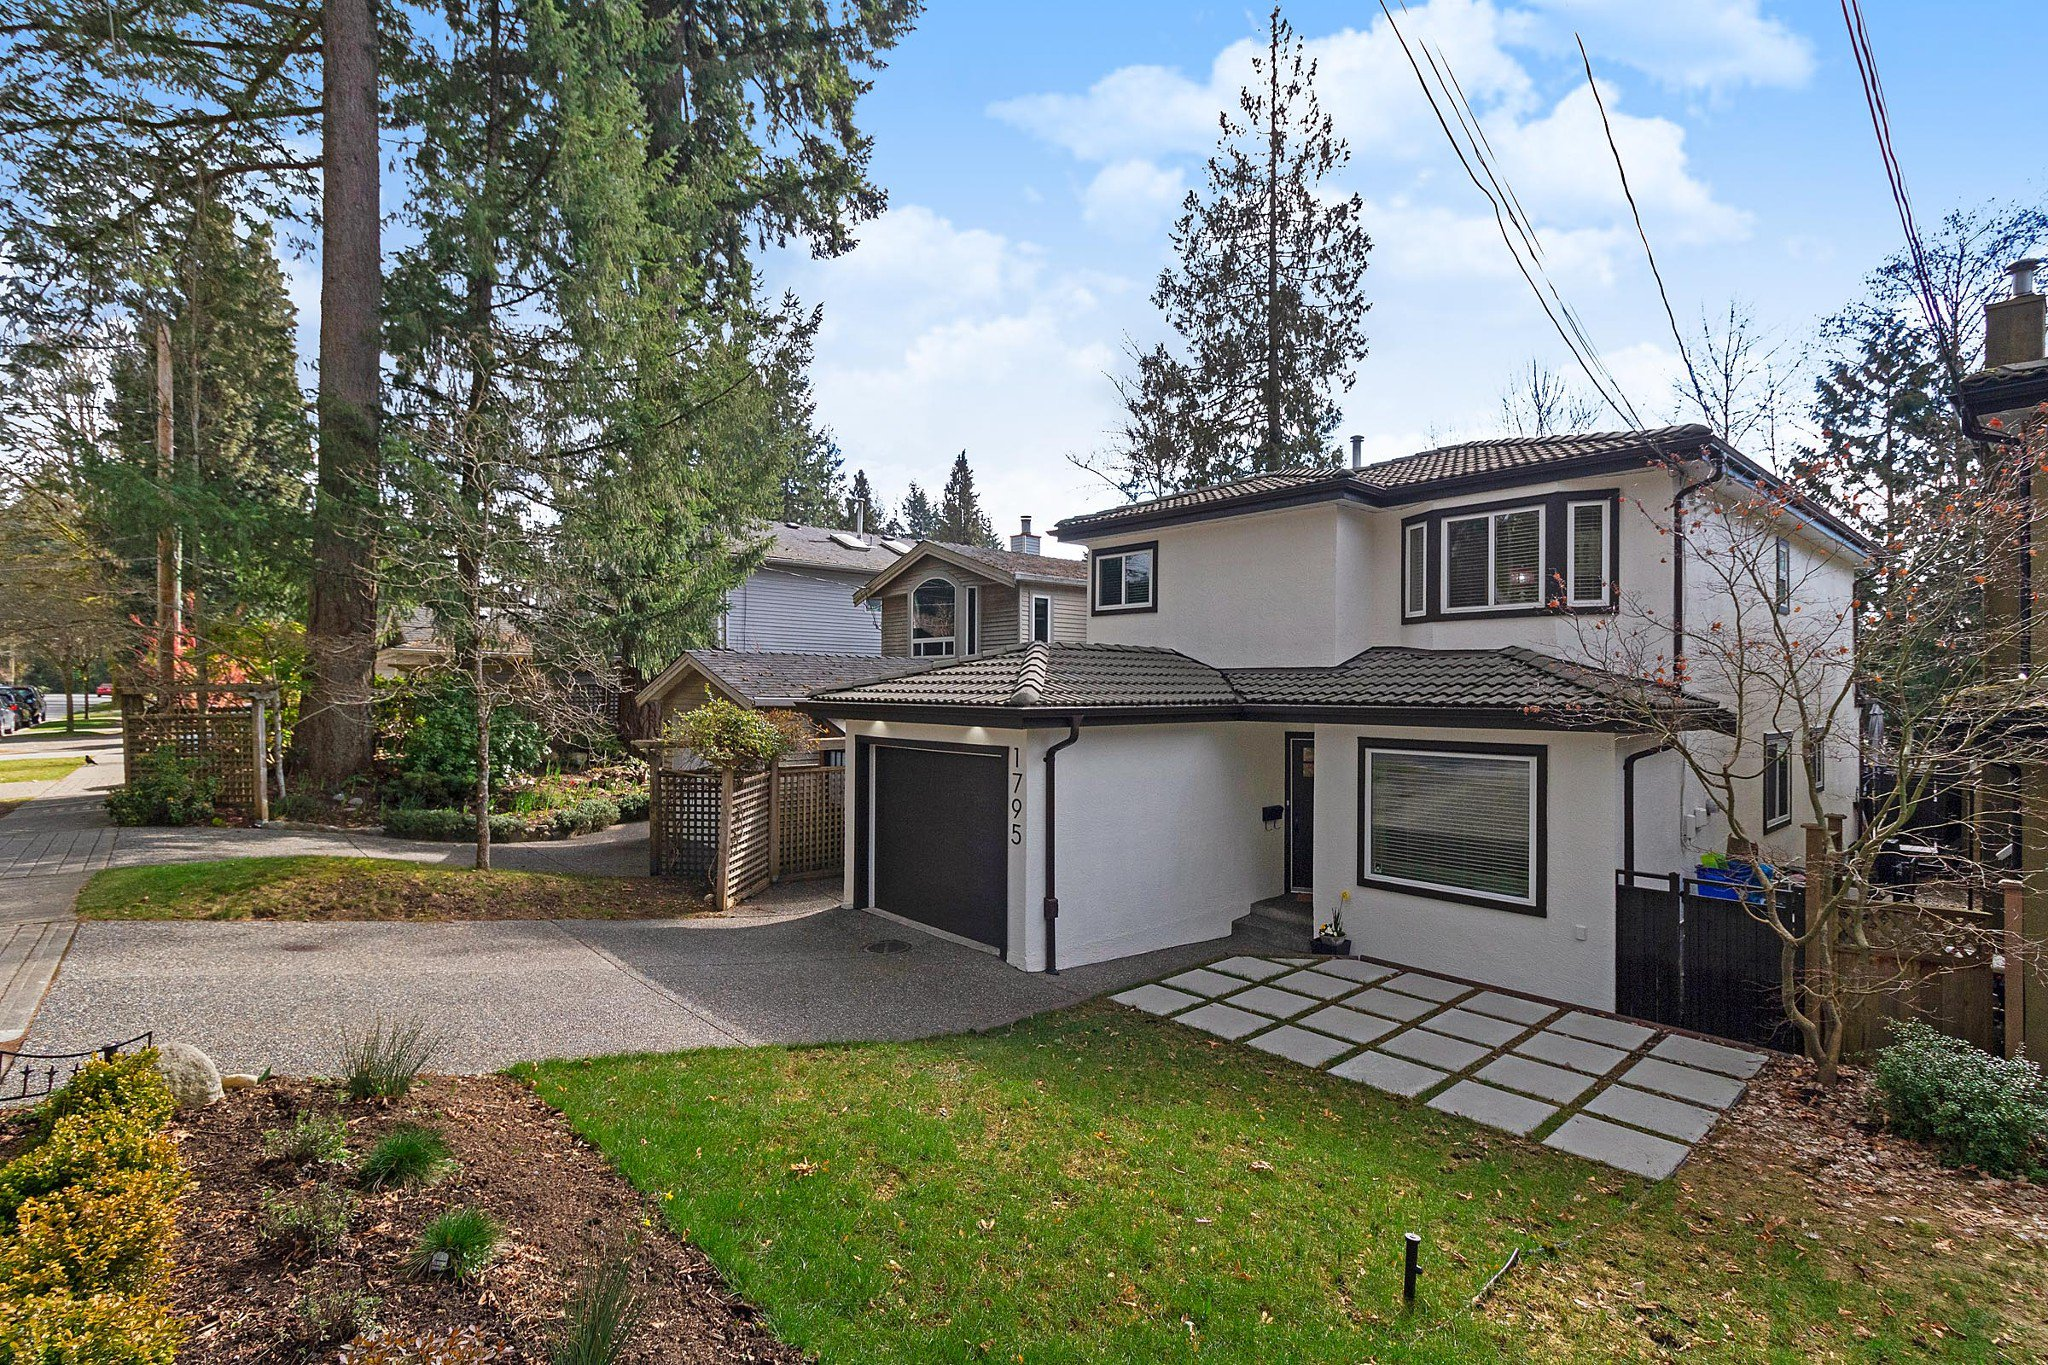 Main Photo: 1795 PETERS Road in North Vancouver: Lynn Valley House for sale : MLS®# R2445223